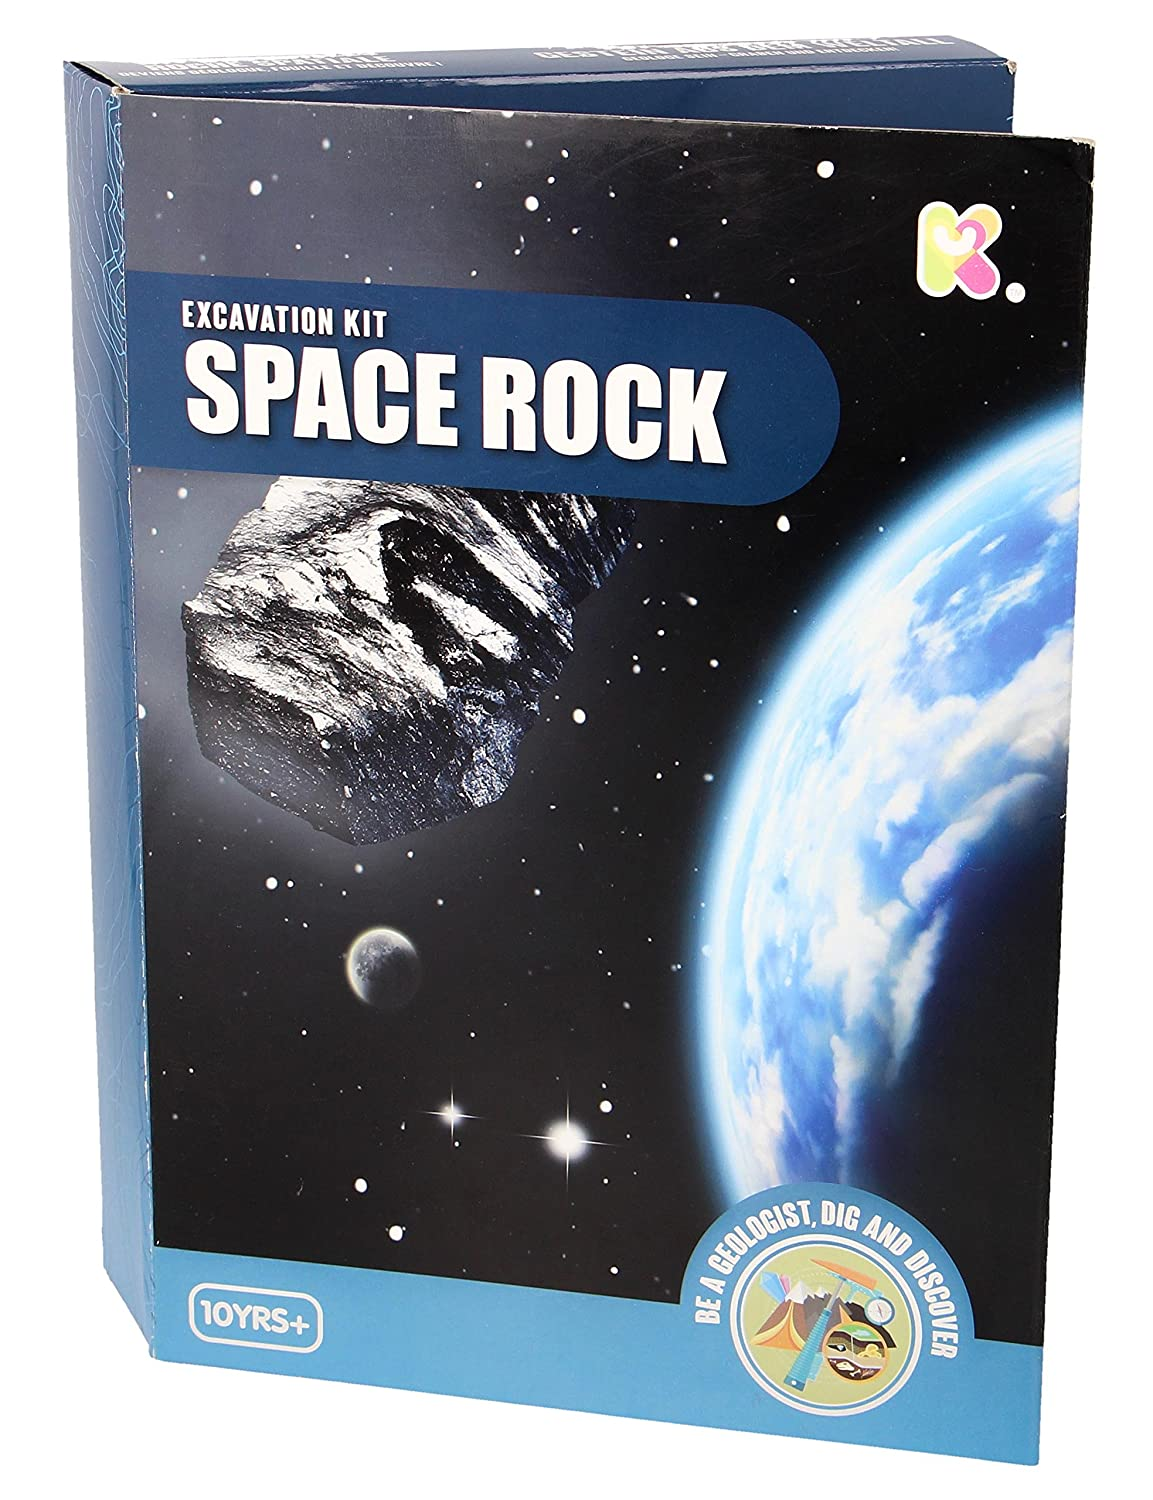 Gift Idea For Boys & Girls - Space Rock Excavation Kit Ages 10+ WW Global Trading